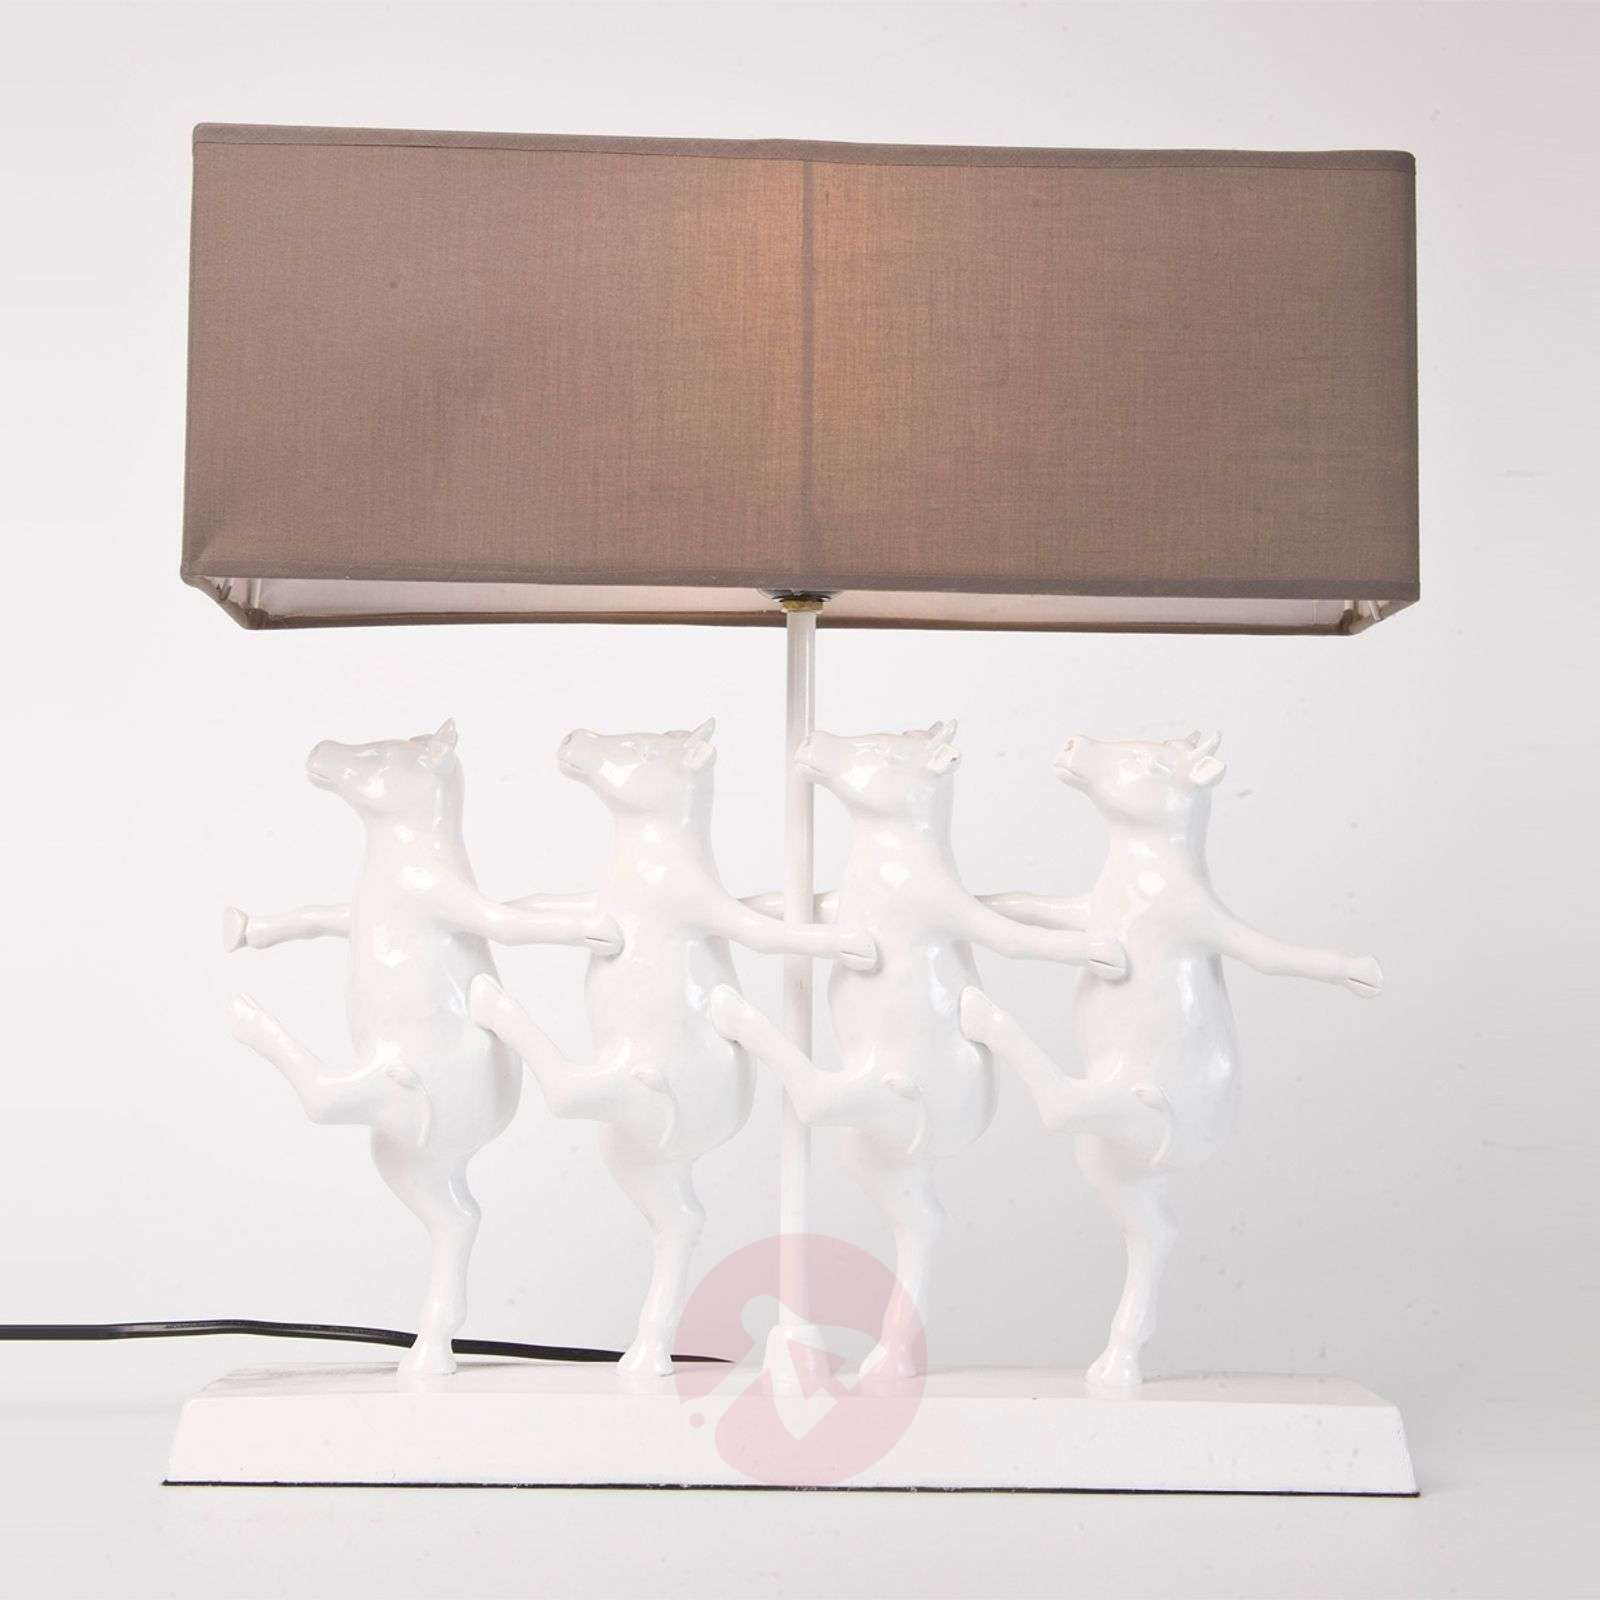 KARE Dancing Cows funny table lamp-5517080-01